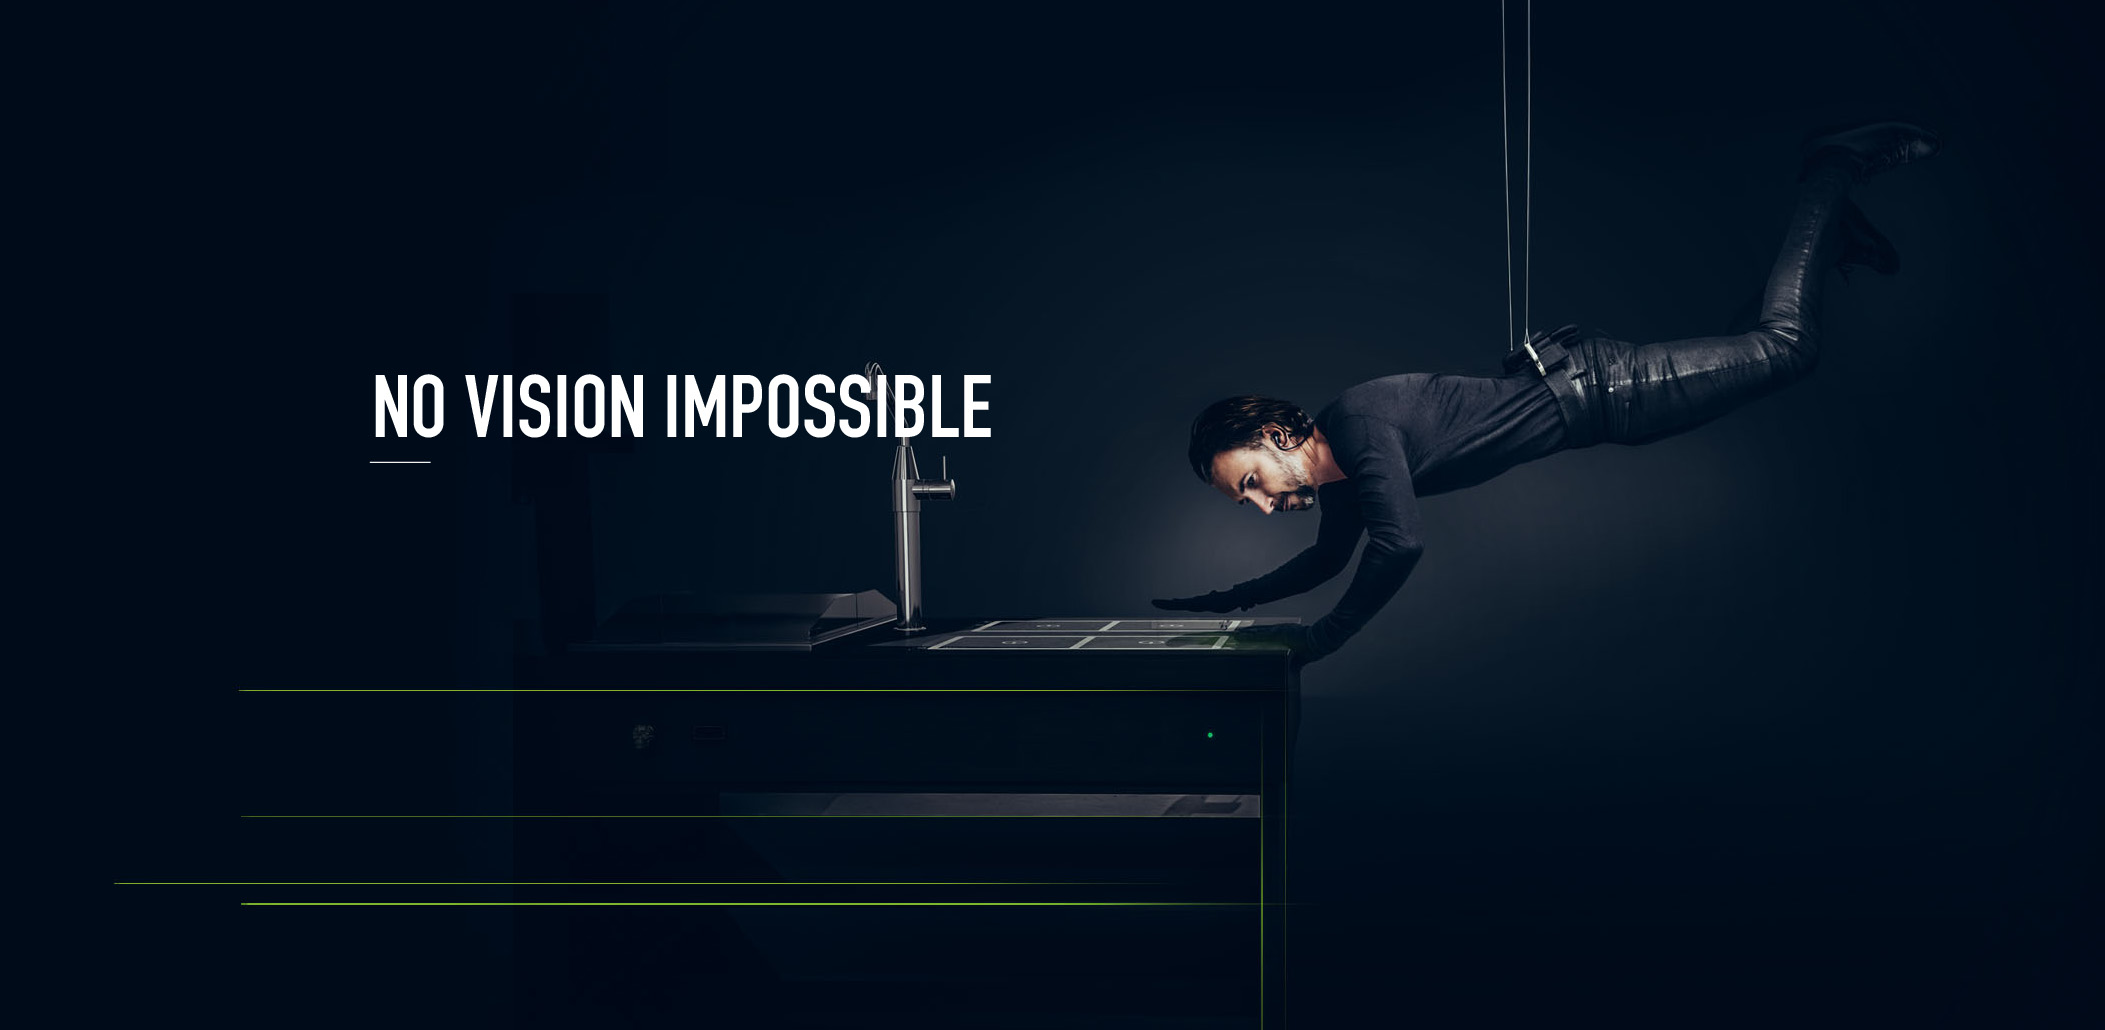 No Vision Impossible